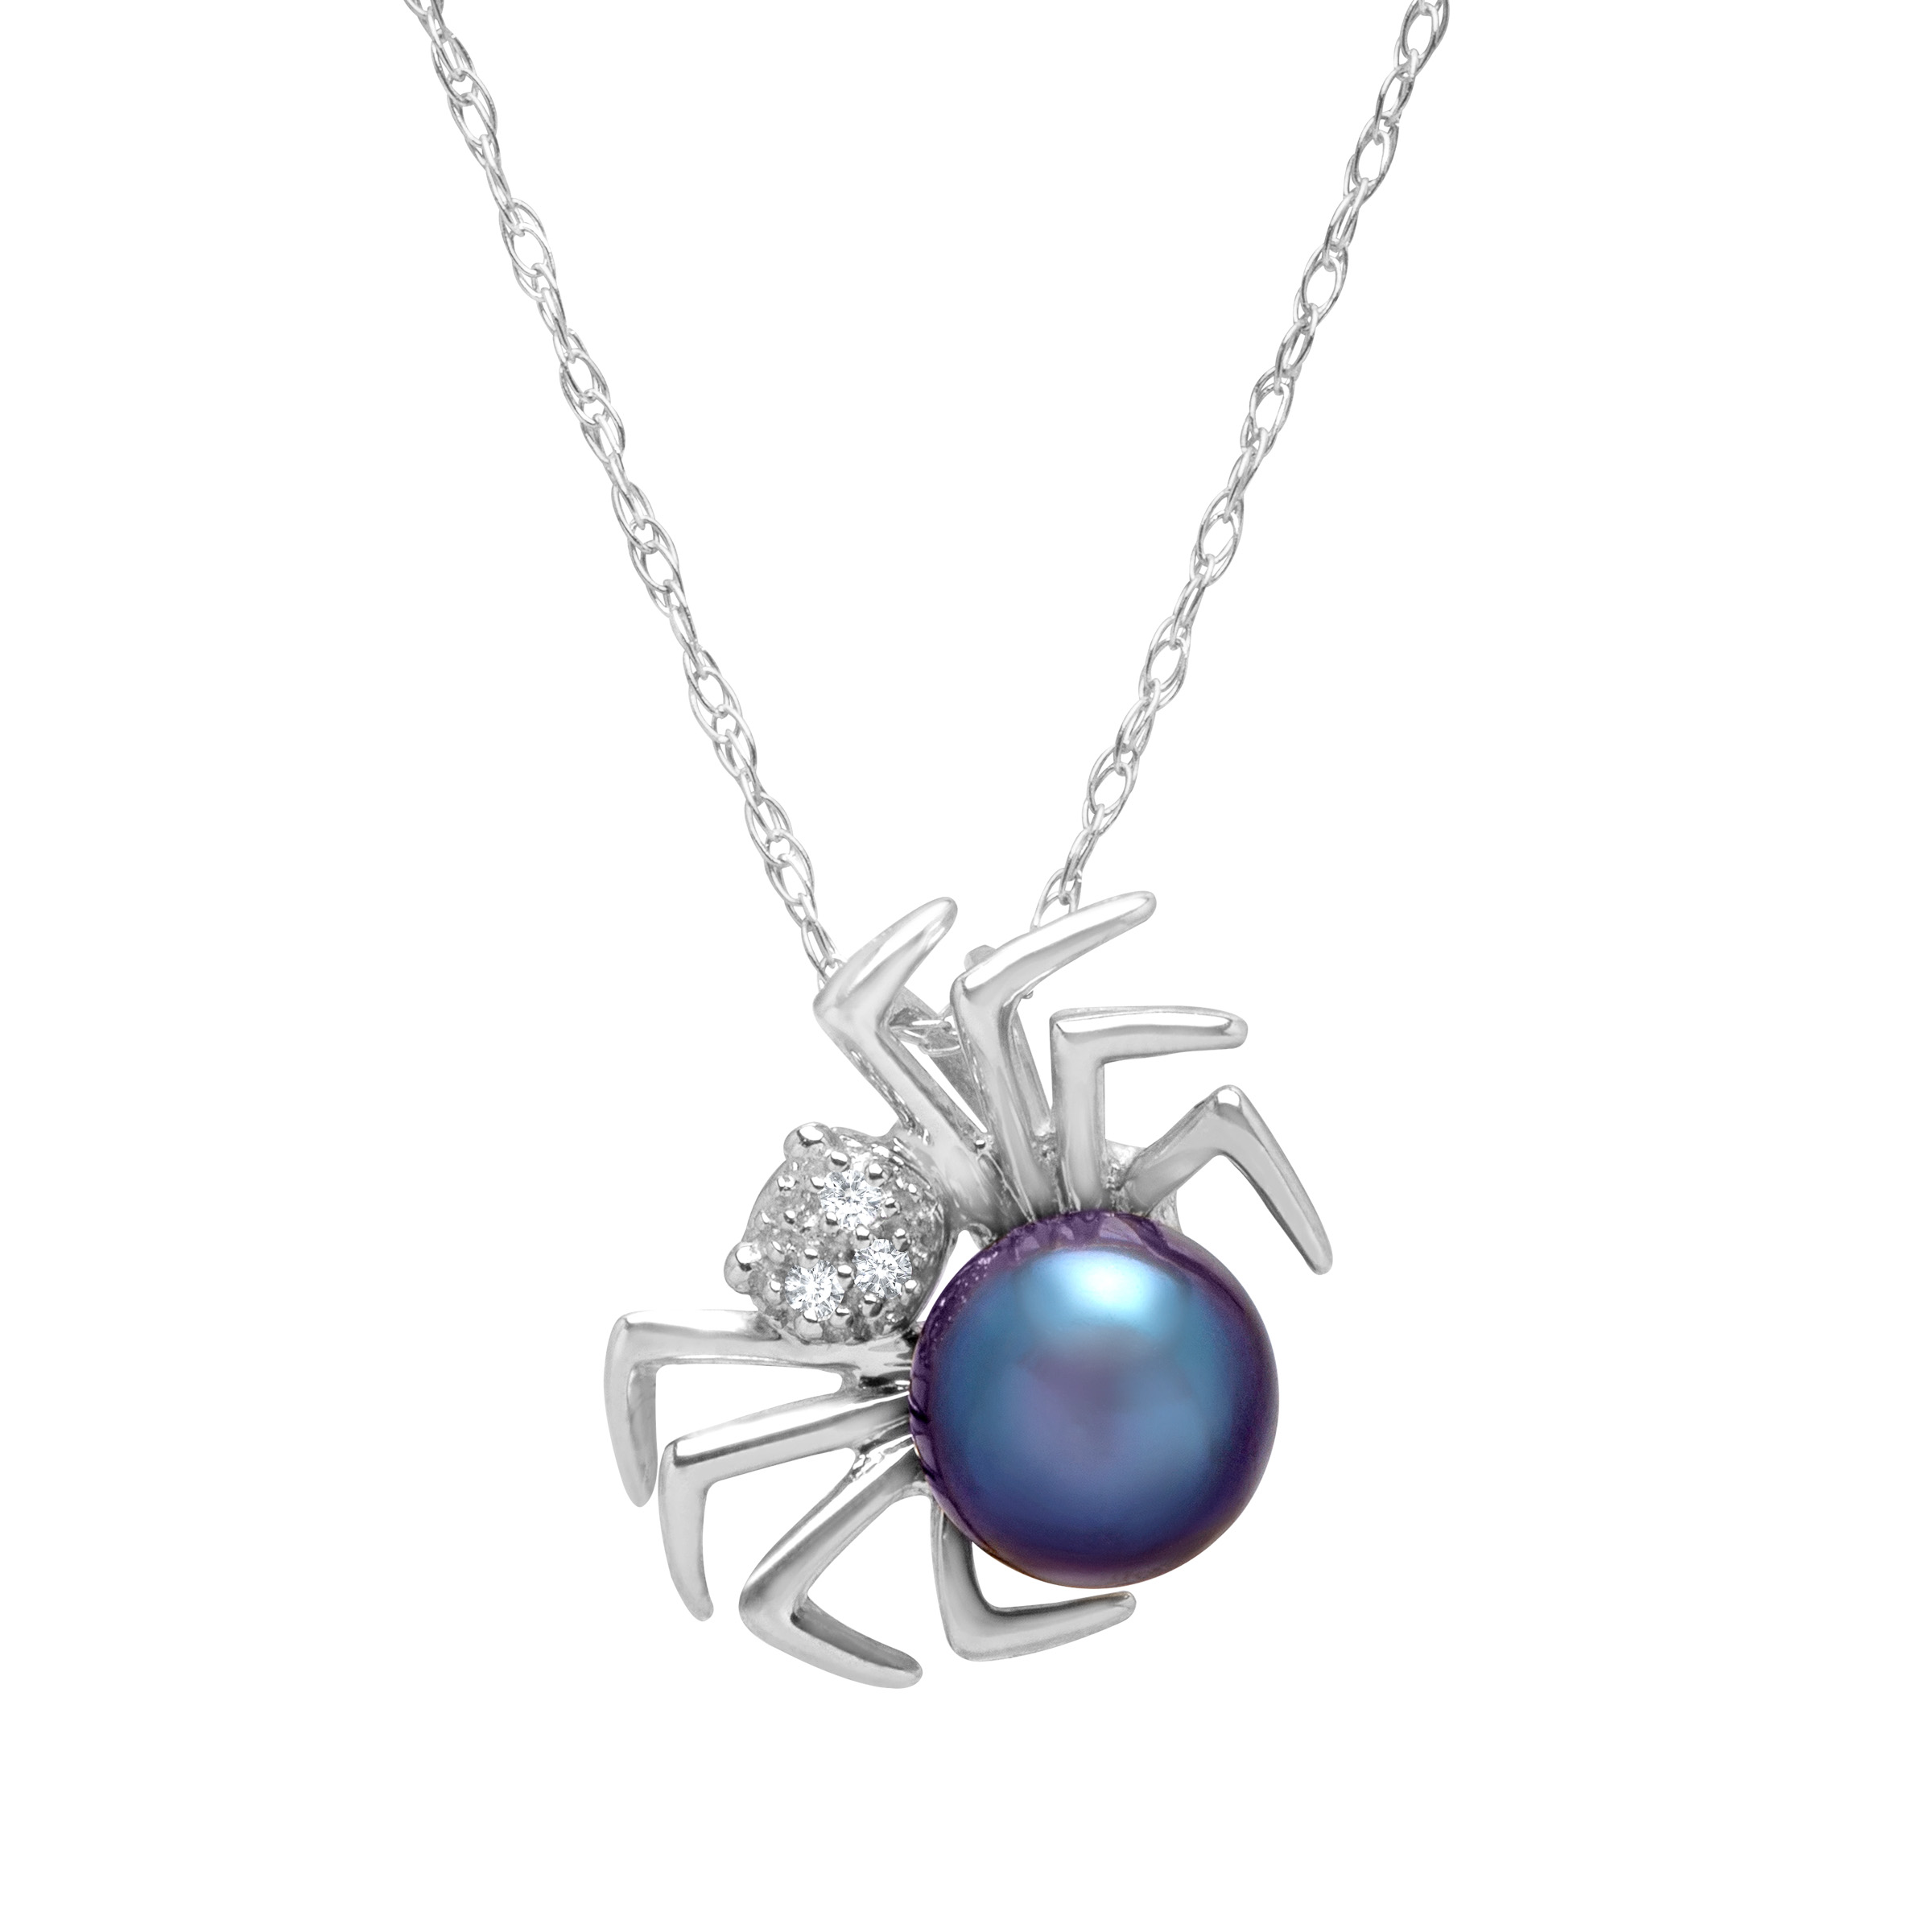 6 mm Freshwater Black Pearl Spider Pendant Necklace with Diamonds in 14kt White Gold by Richline Group